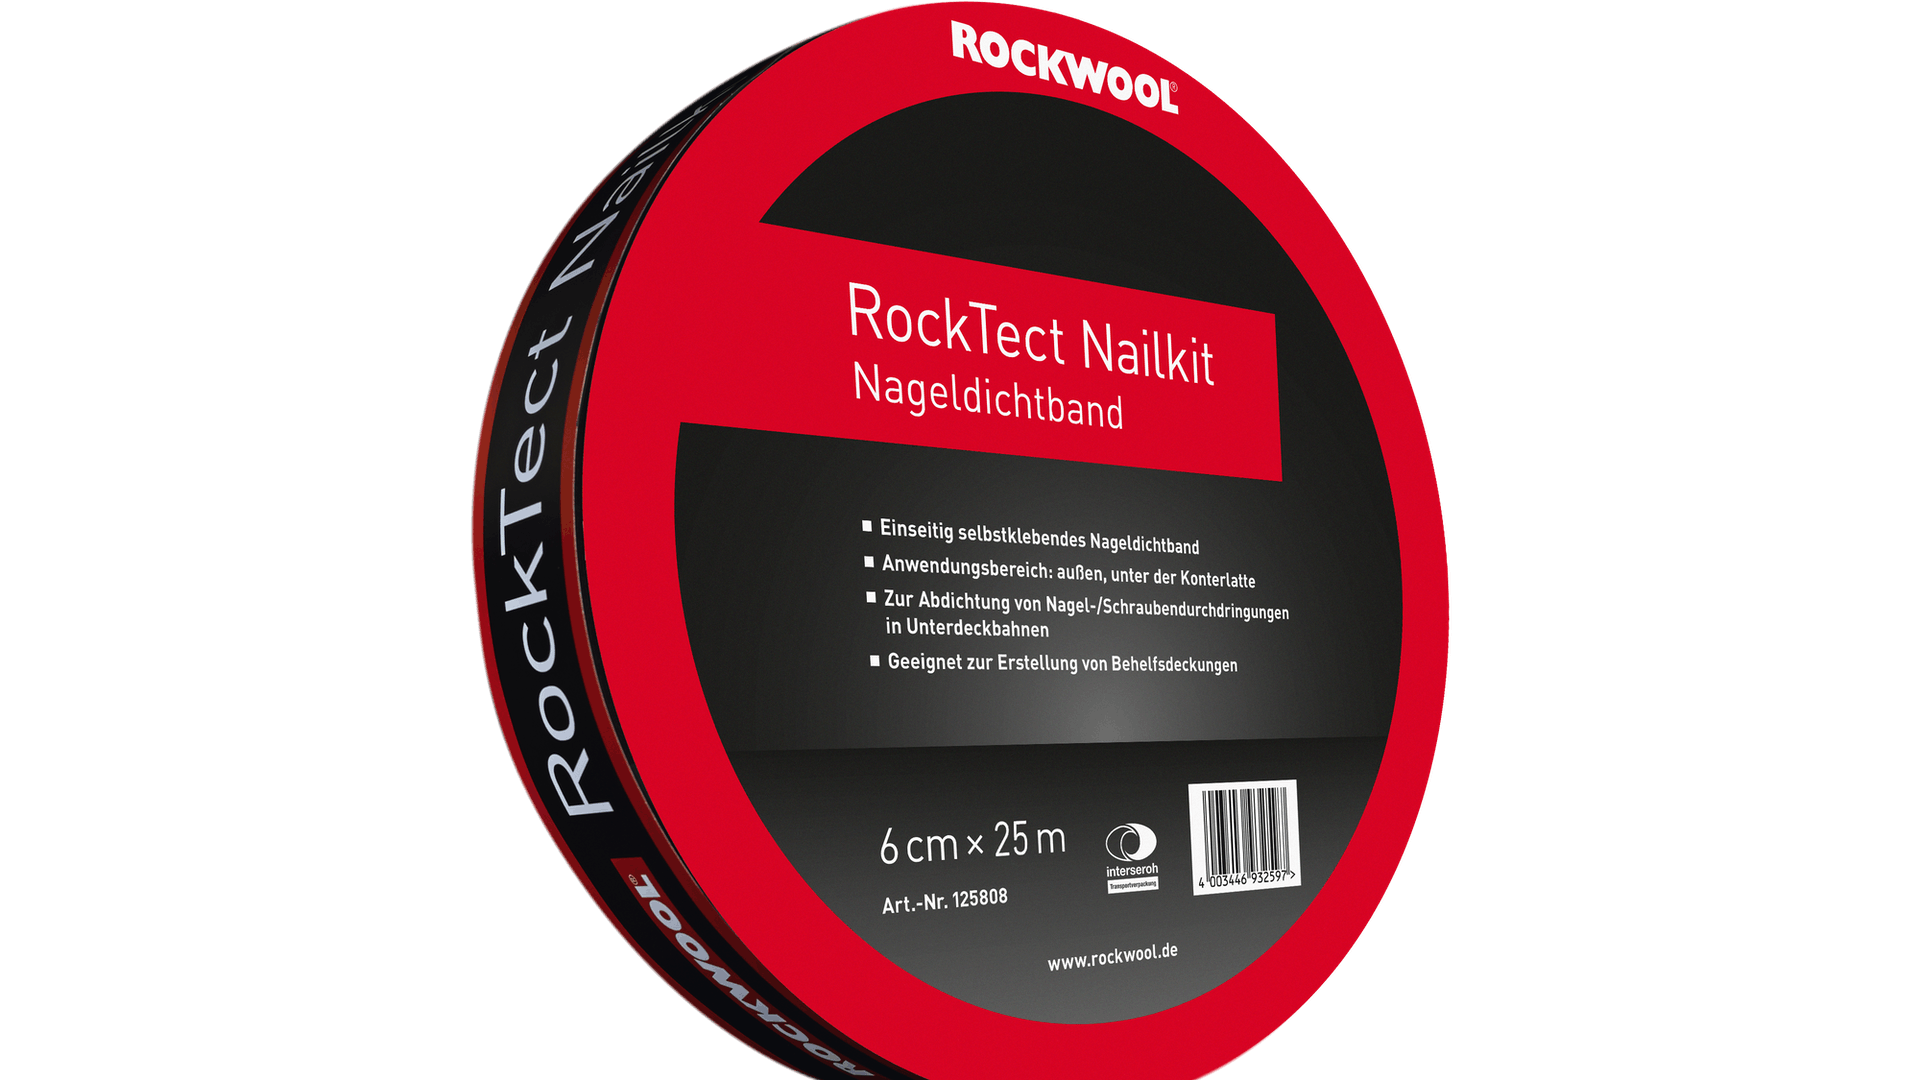 product, product page, germany, gbi, rocktect, nailkit